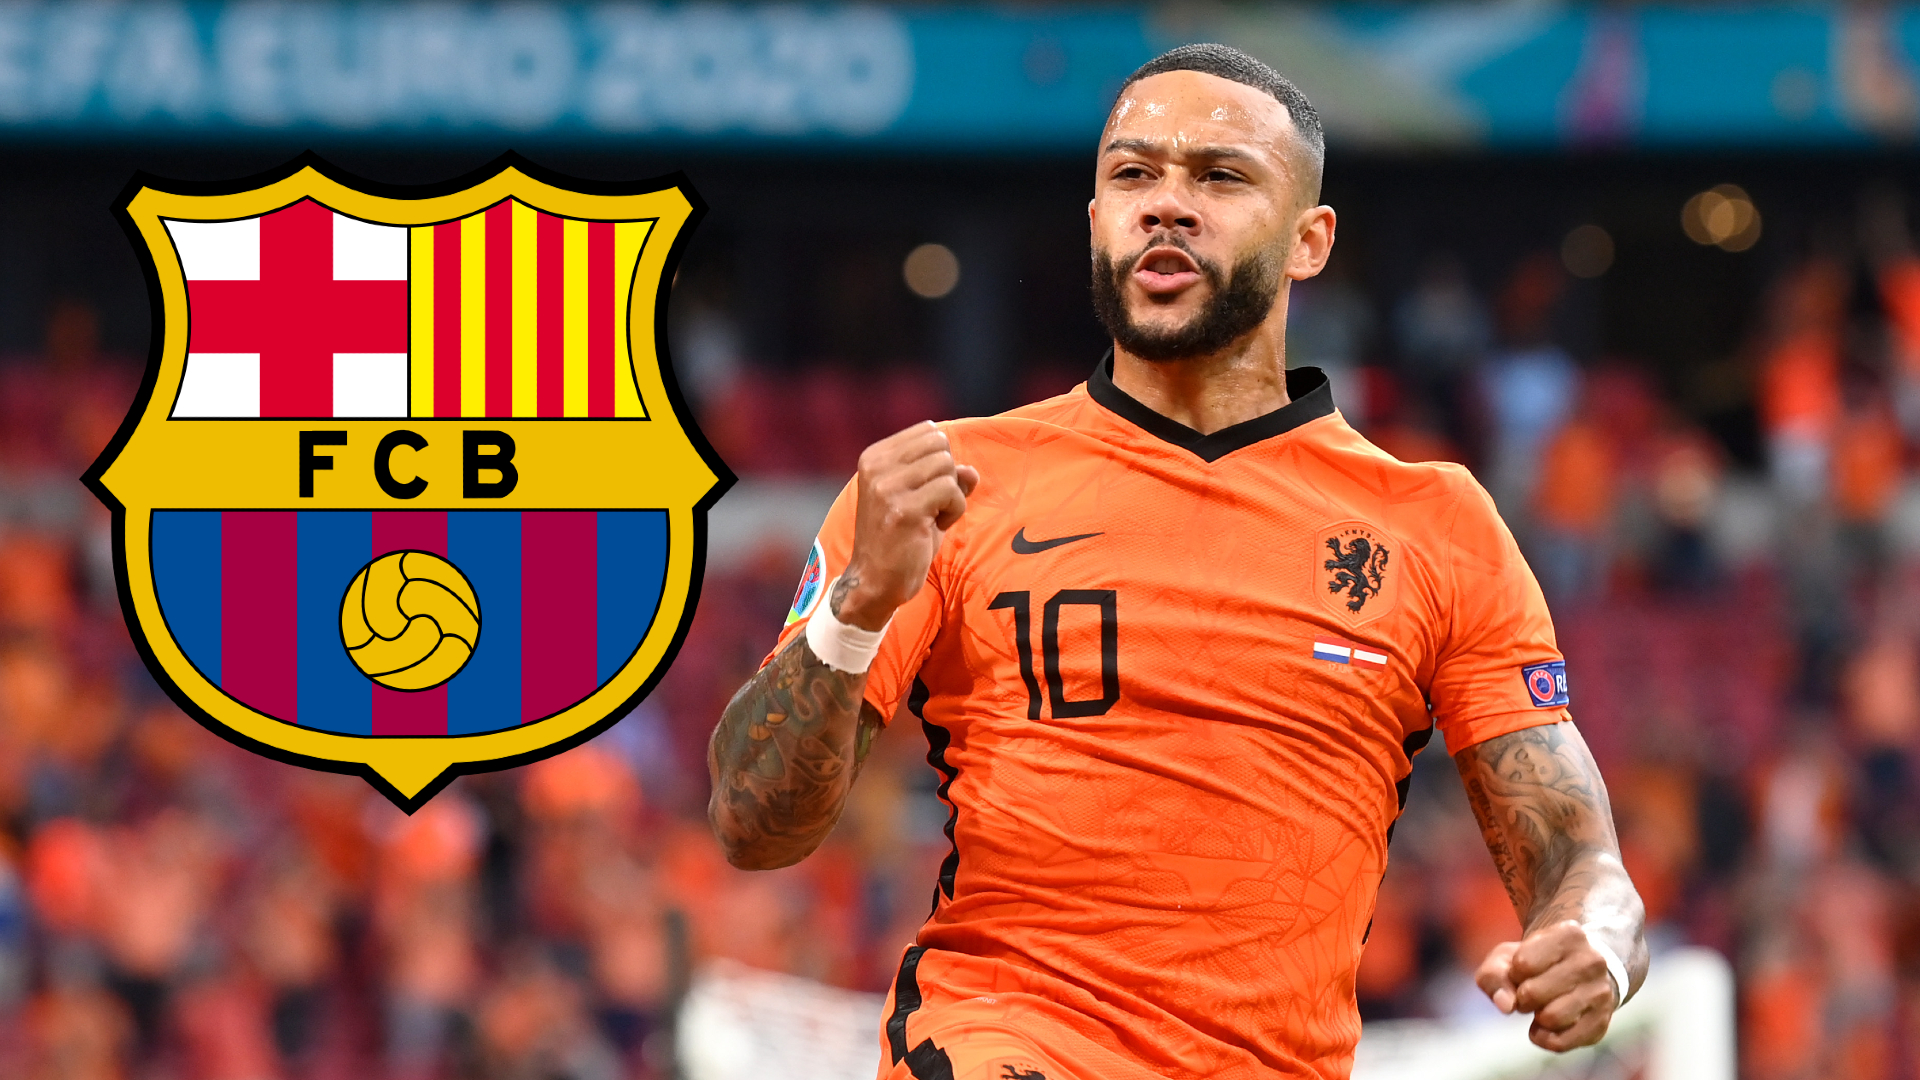 Barcelona complete the signing of Depay as a free agent with a two-year contract